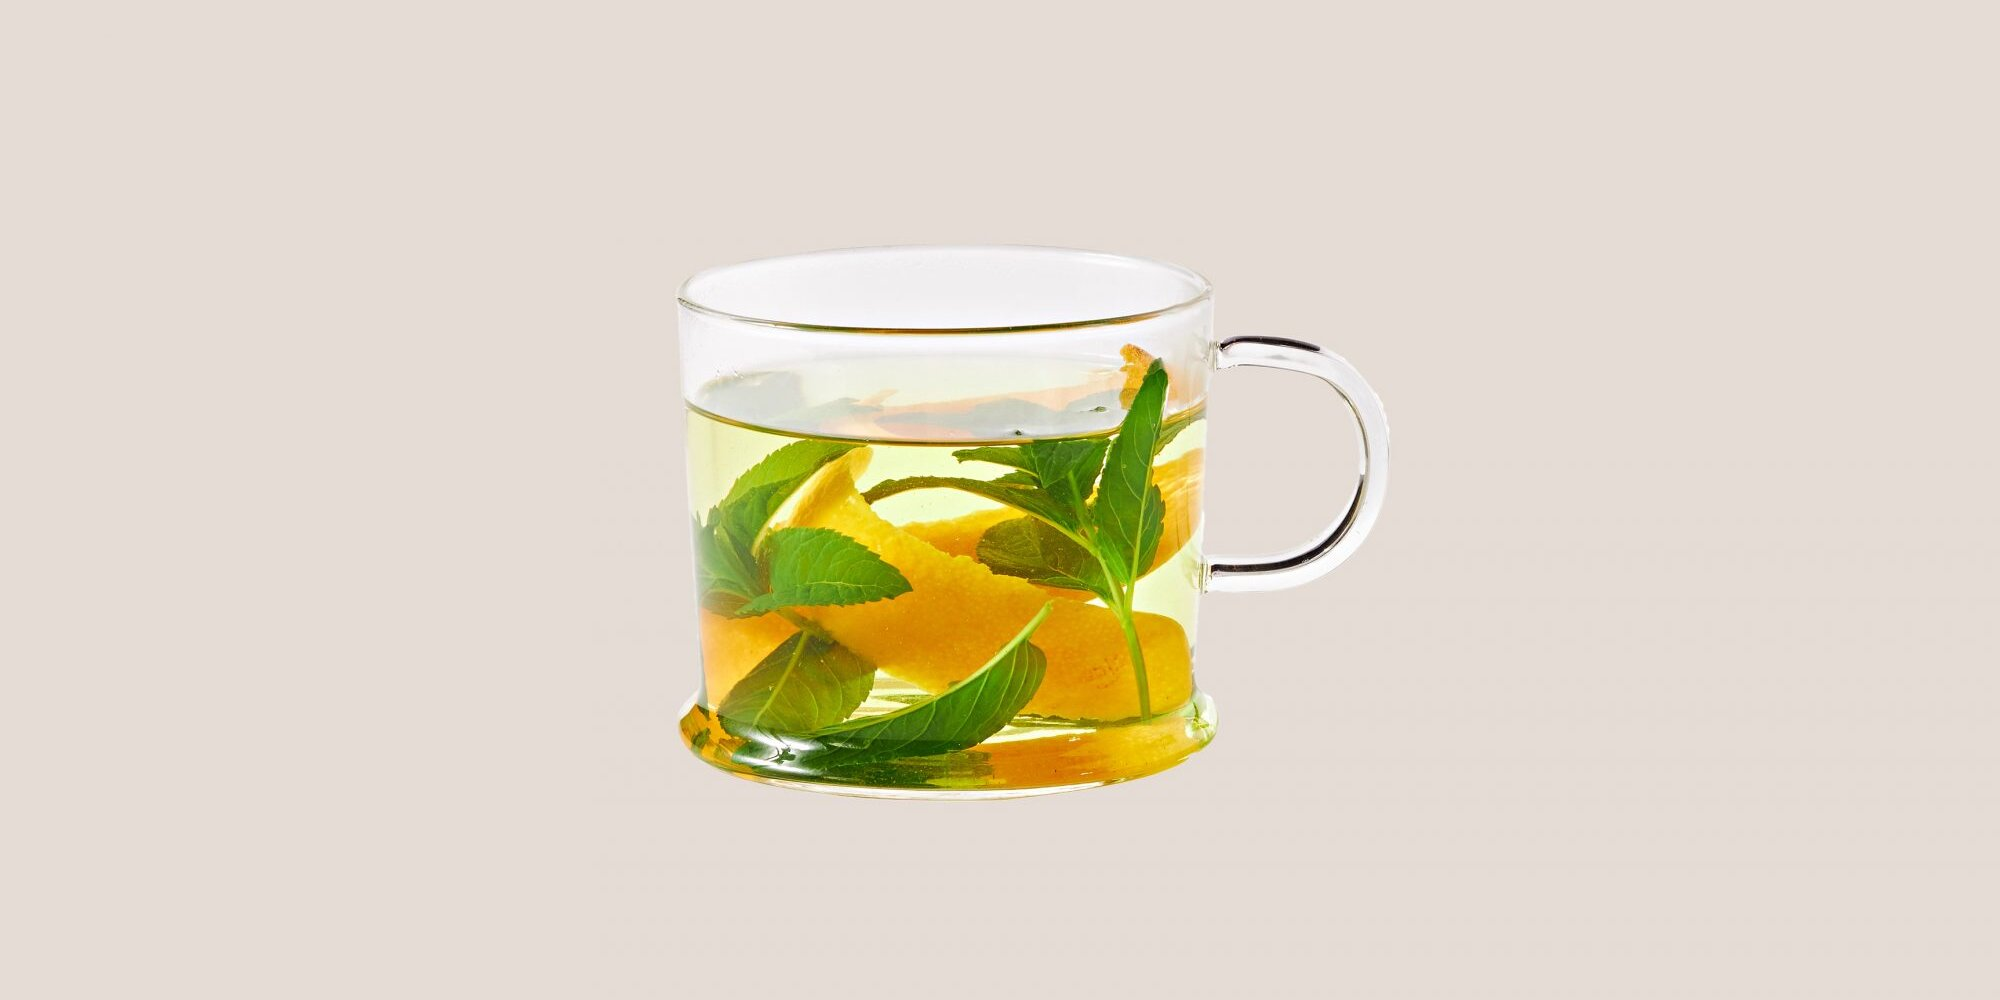 Try These Three Easy Herbal Infusions When You Want a Cozy, Caffeine-Free Drink